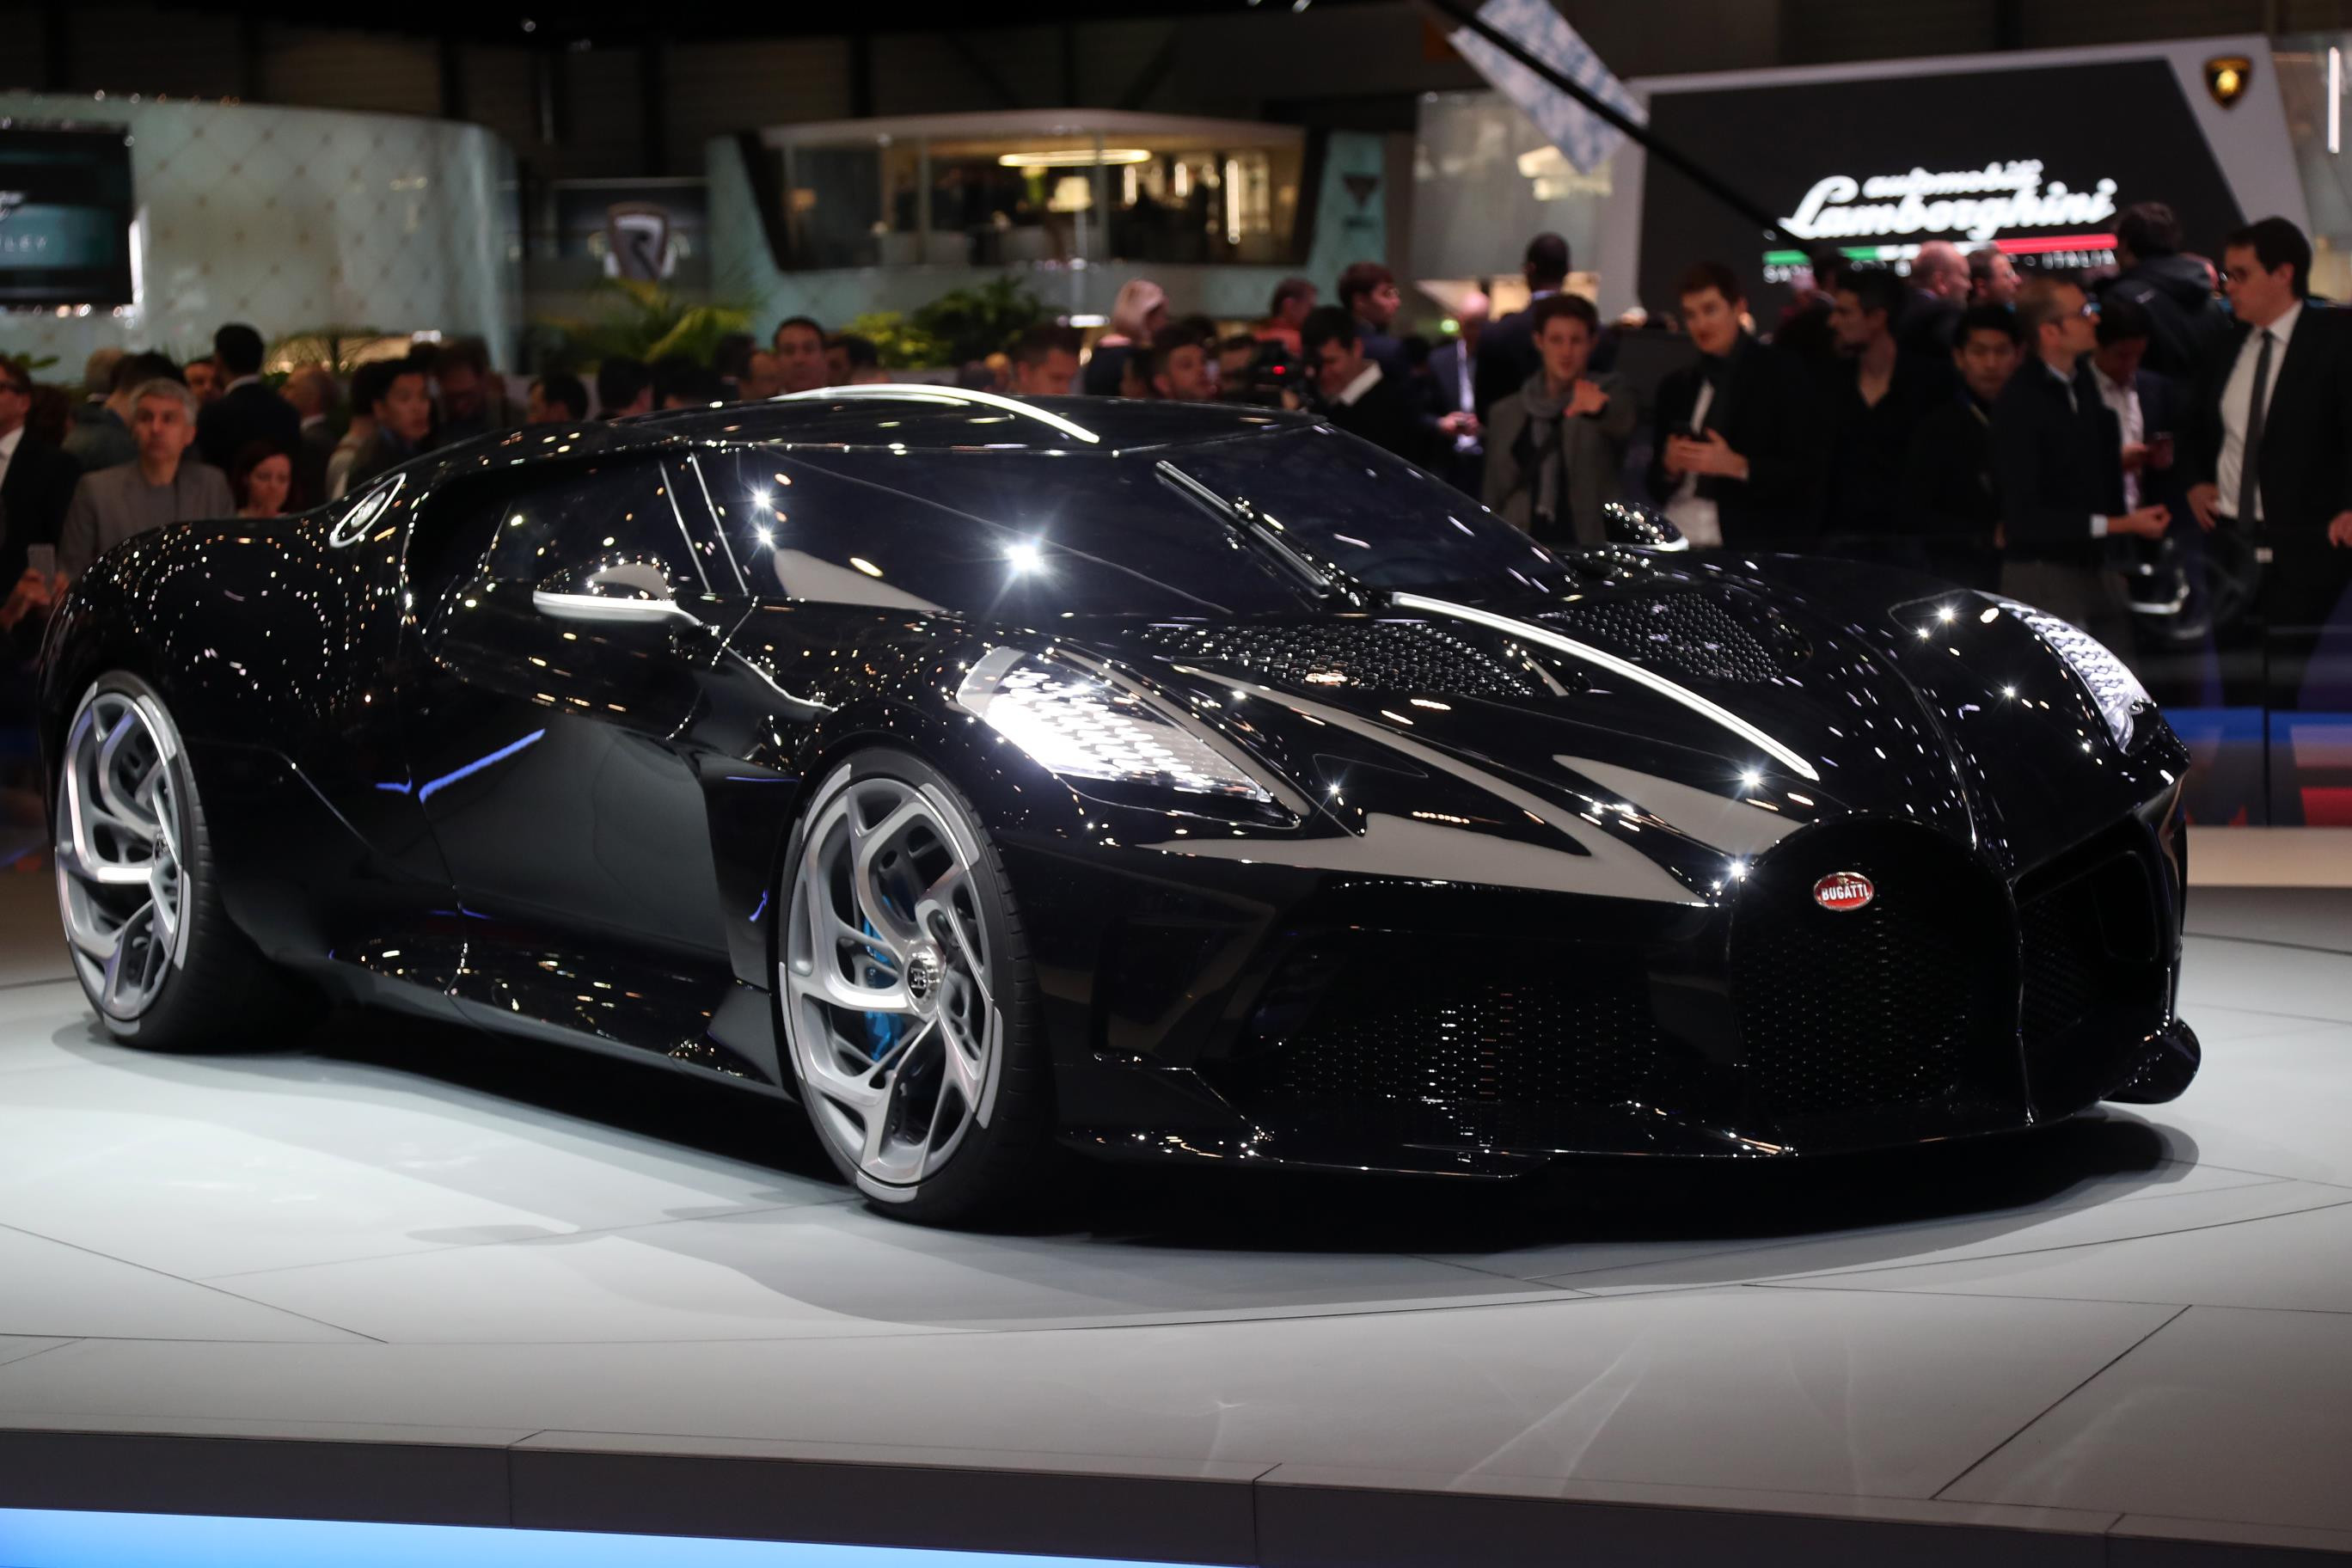 The Bugatti La Voiture Noire, facing right, on display at the Geneva Motor Show 2019.